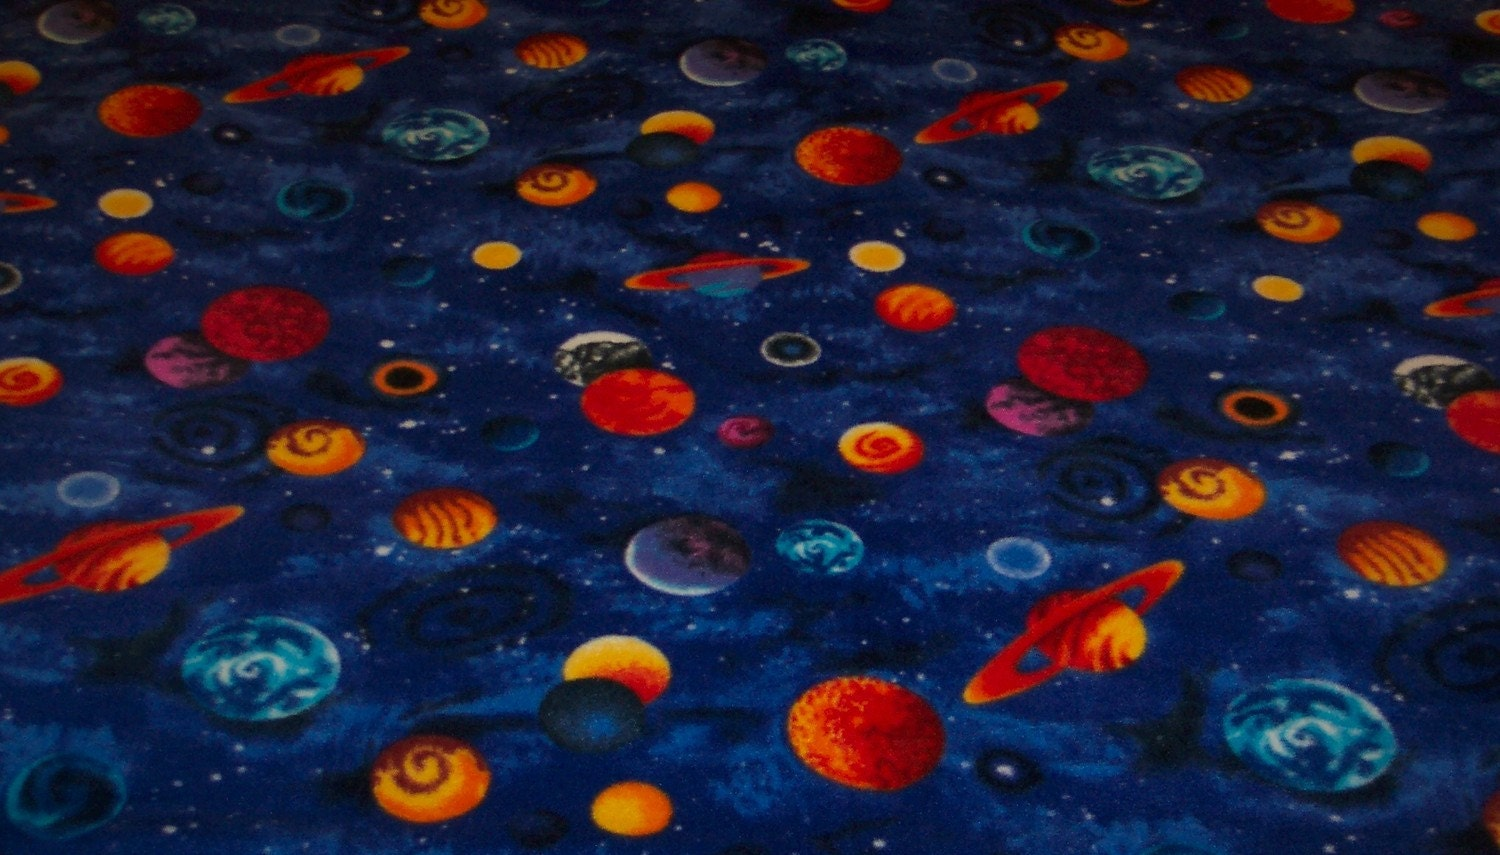 planets and outer space fleece throw blanket